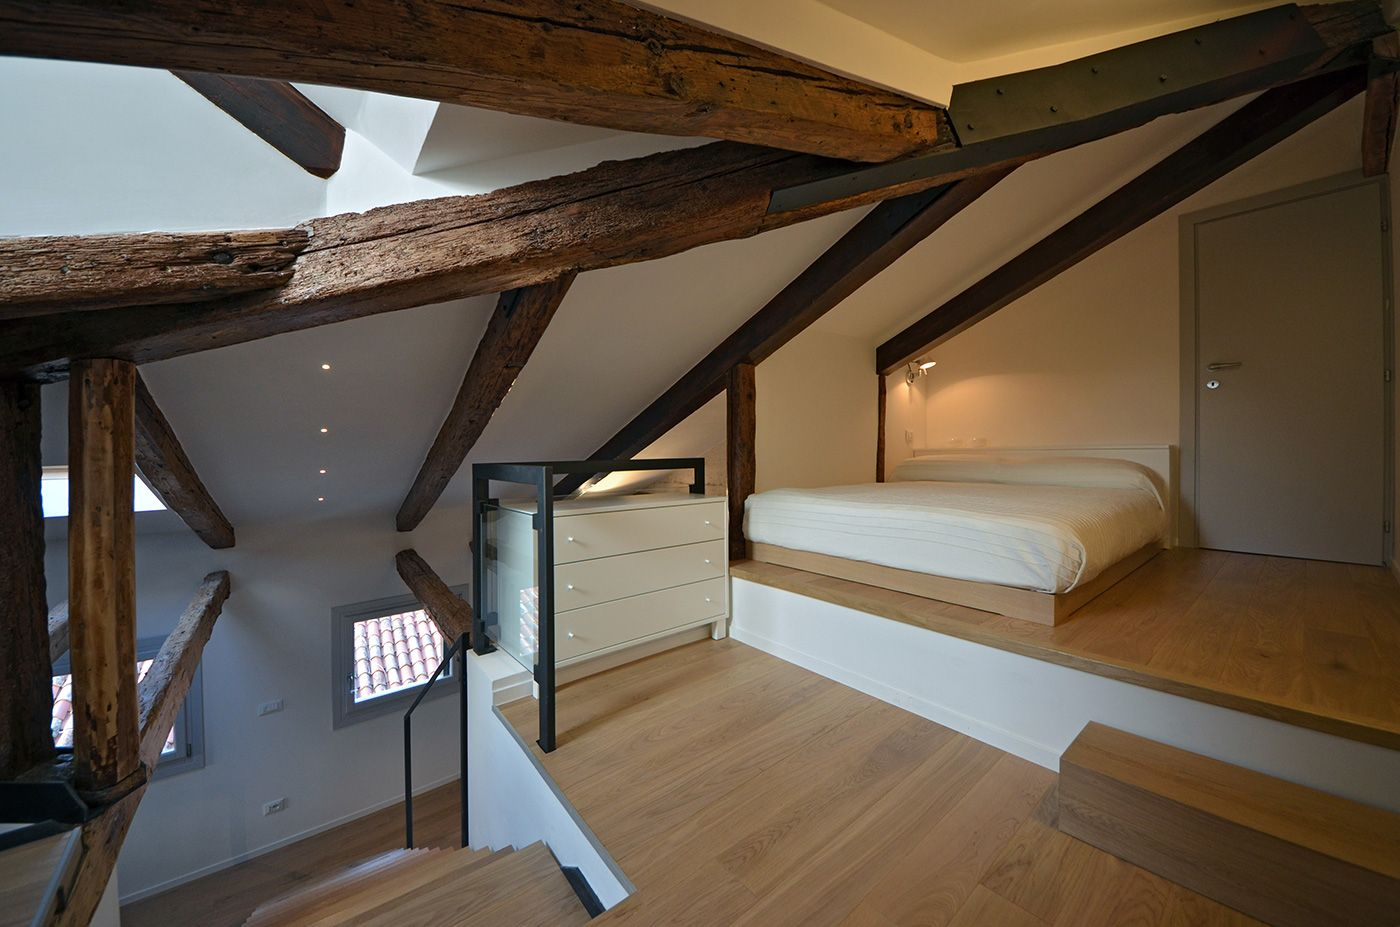 in the attic level there is a 140 cm wide bed